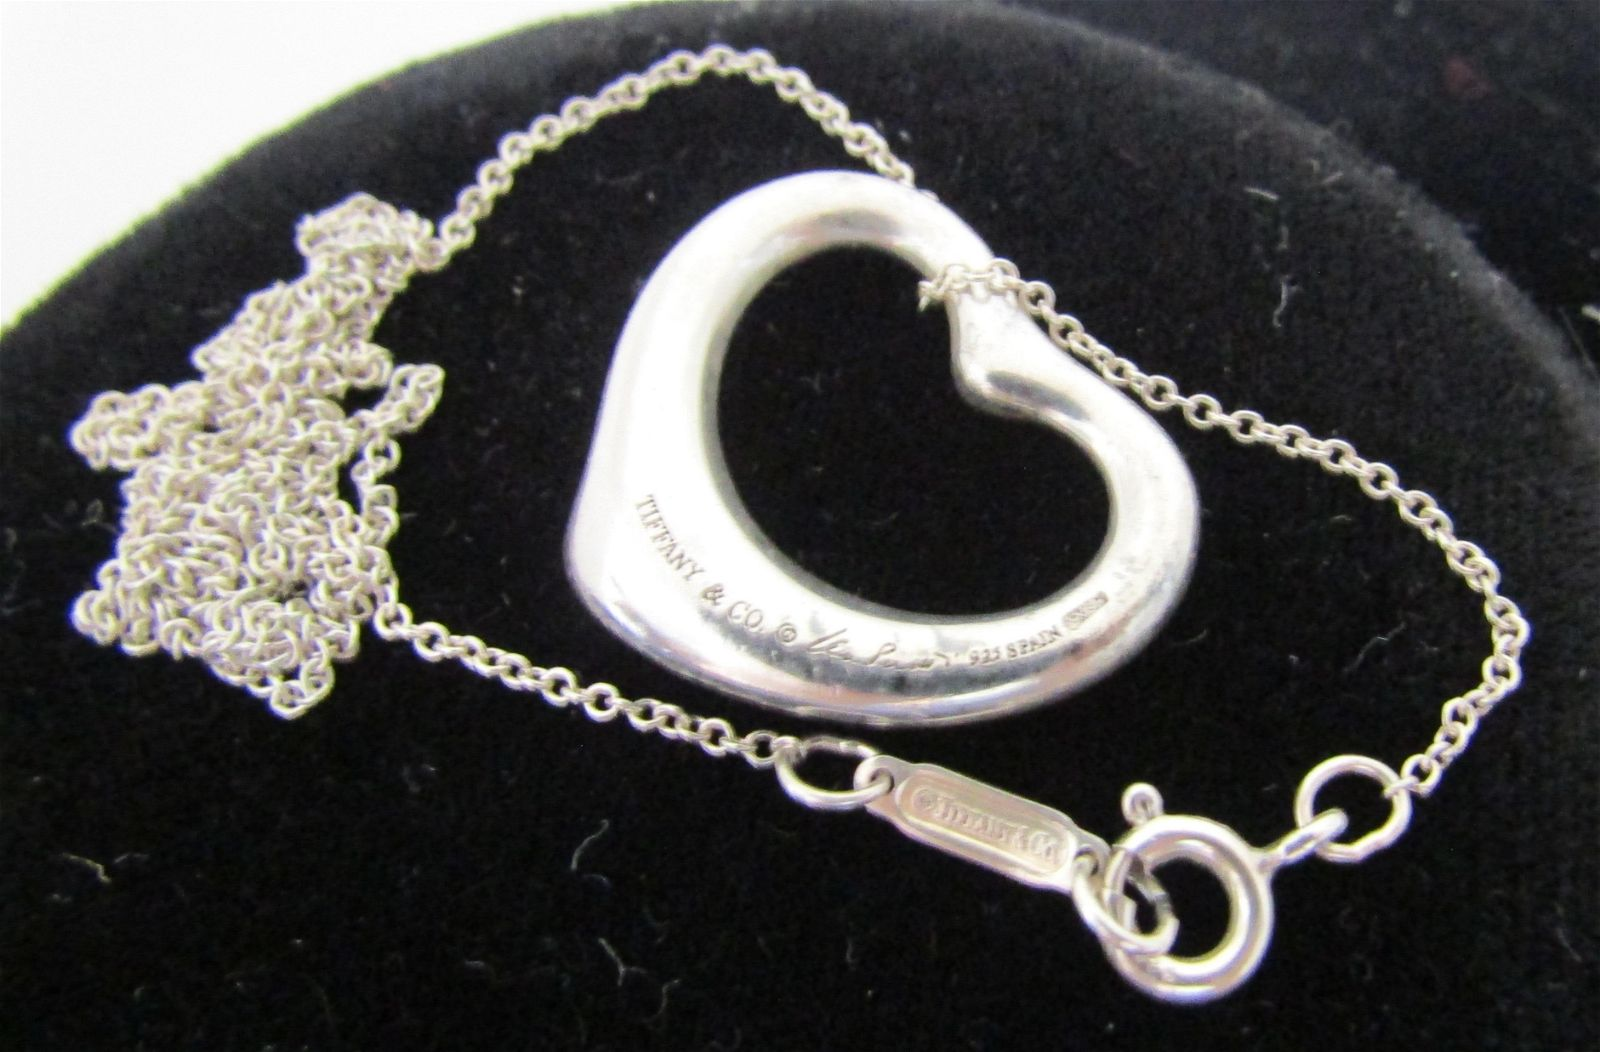 TIFFANY & CO PENDANT & NECKLACE STERLING SILVER